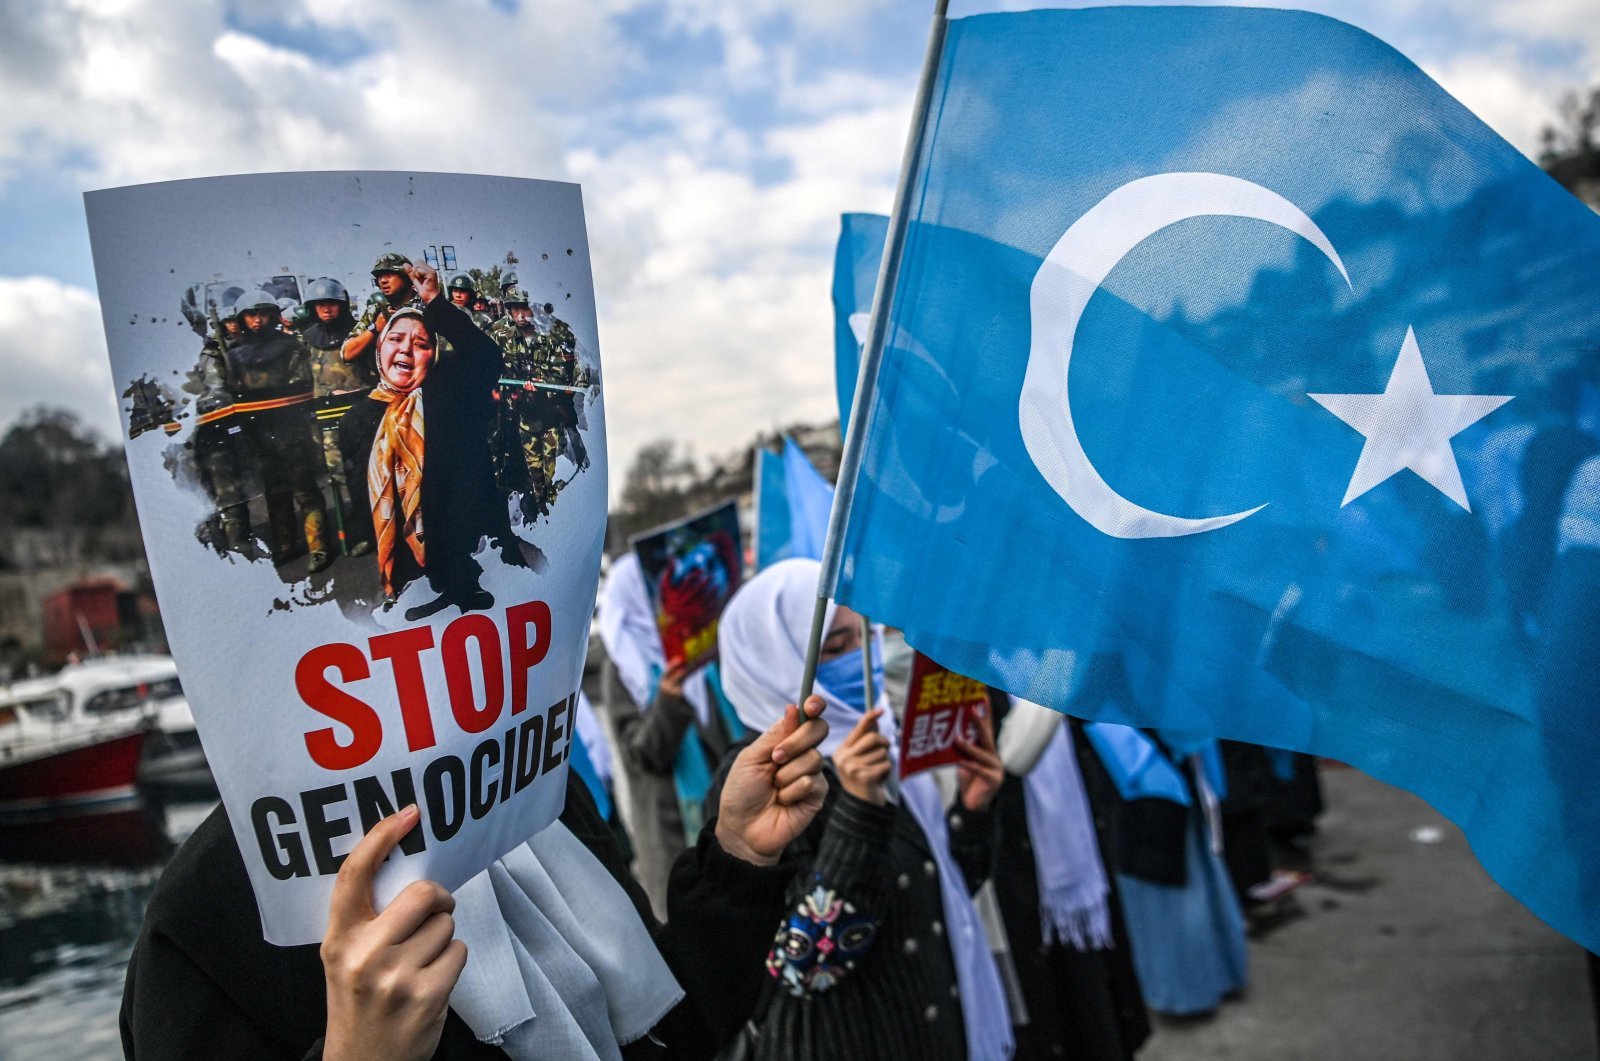 Muslim Uyghur women hold placards and East Turkestan flags as they demonstrate outside the consulate in Istanbul on Women's Day, demanding news of their relatives near China. Istanbul, Turkey, March 8, 2021 (AFP)